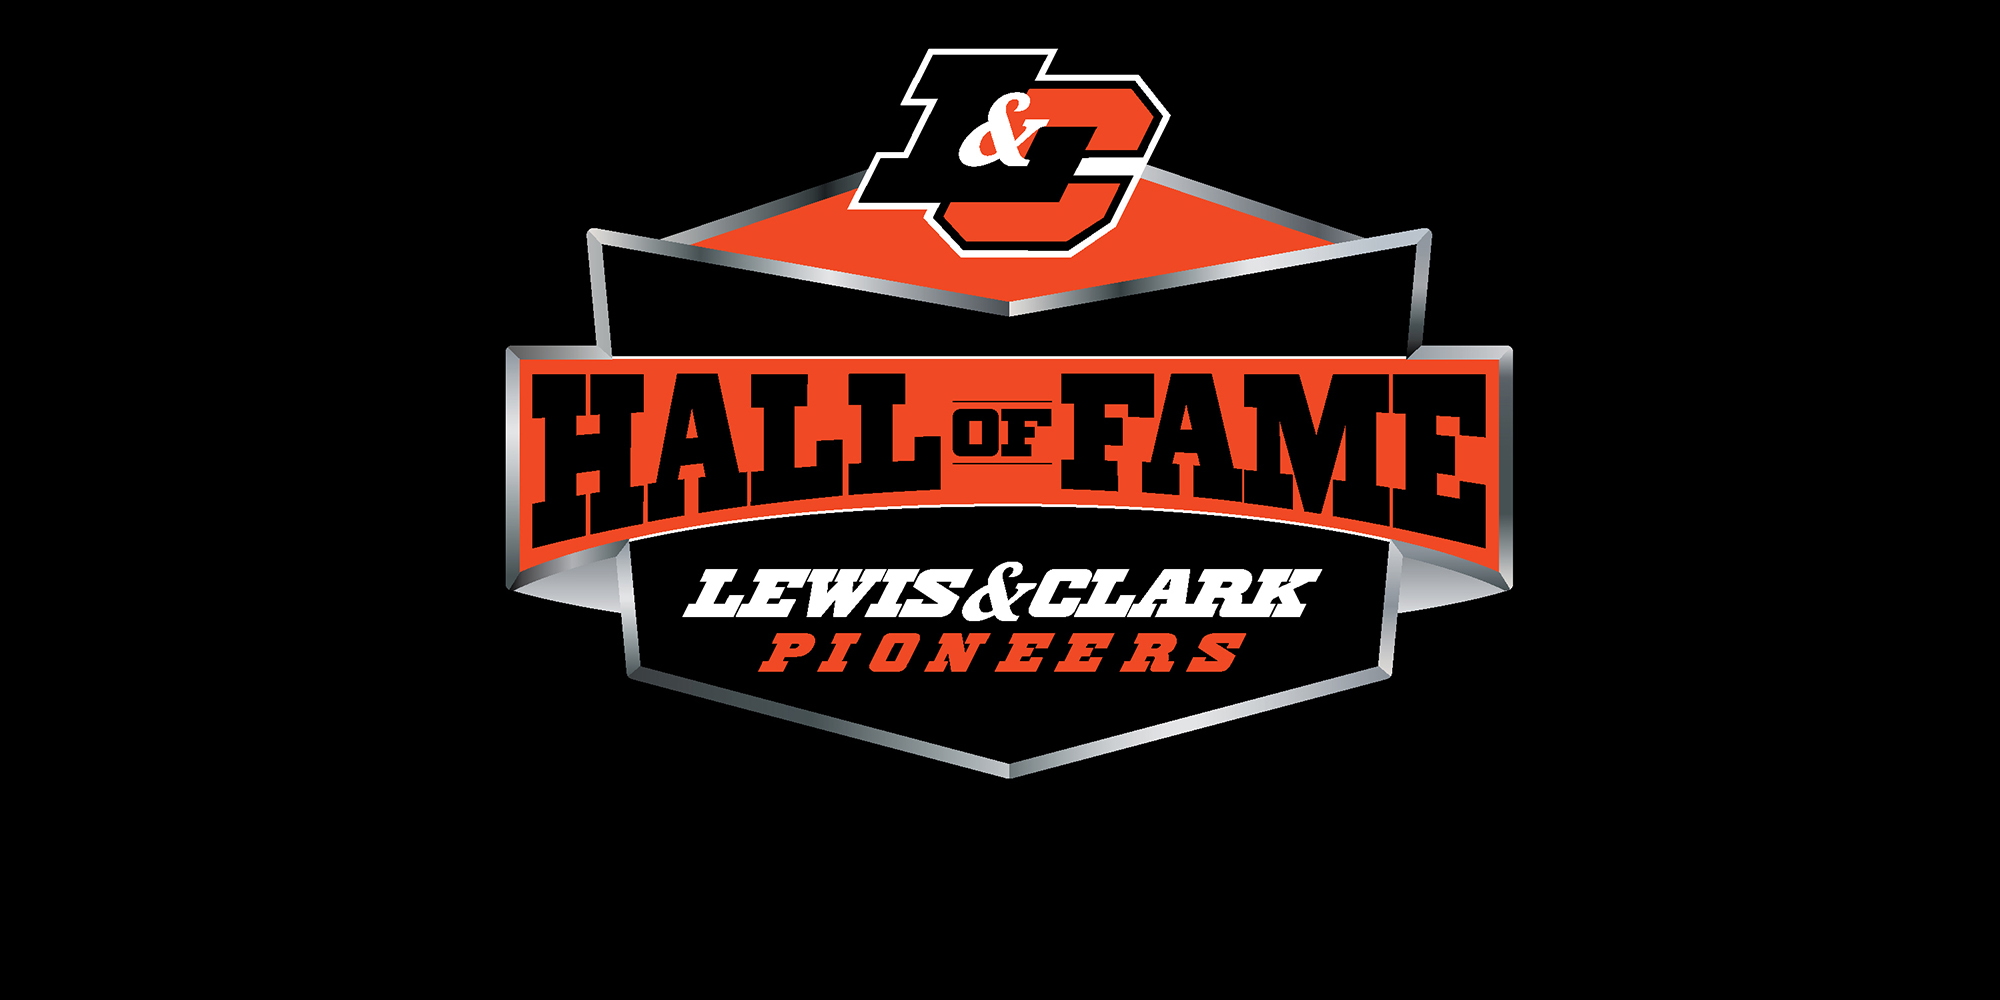 Class of 2018 announced for Lewis & Clark Hall of Fame